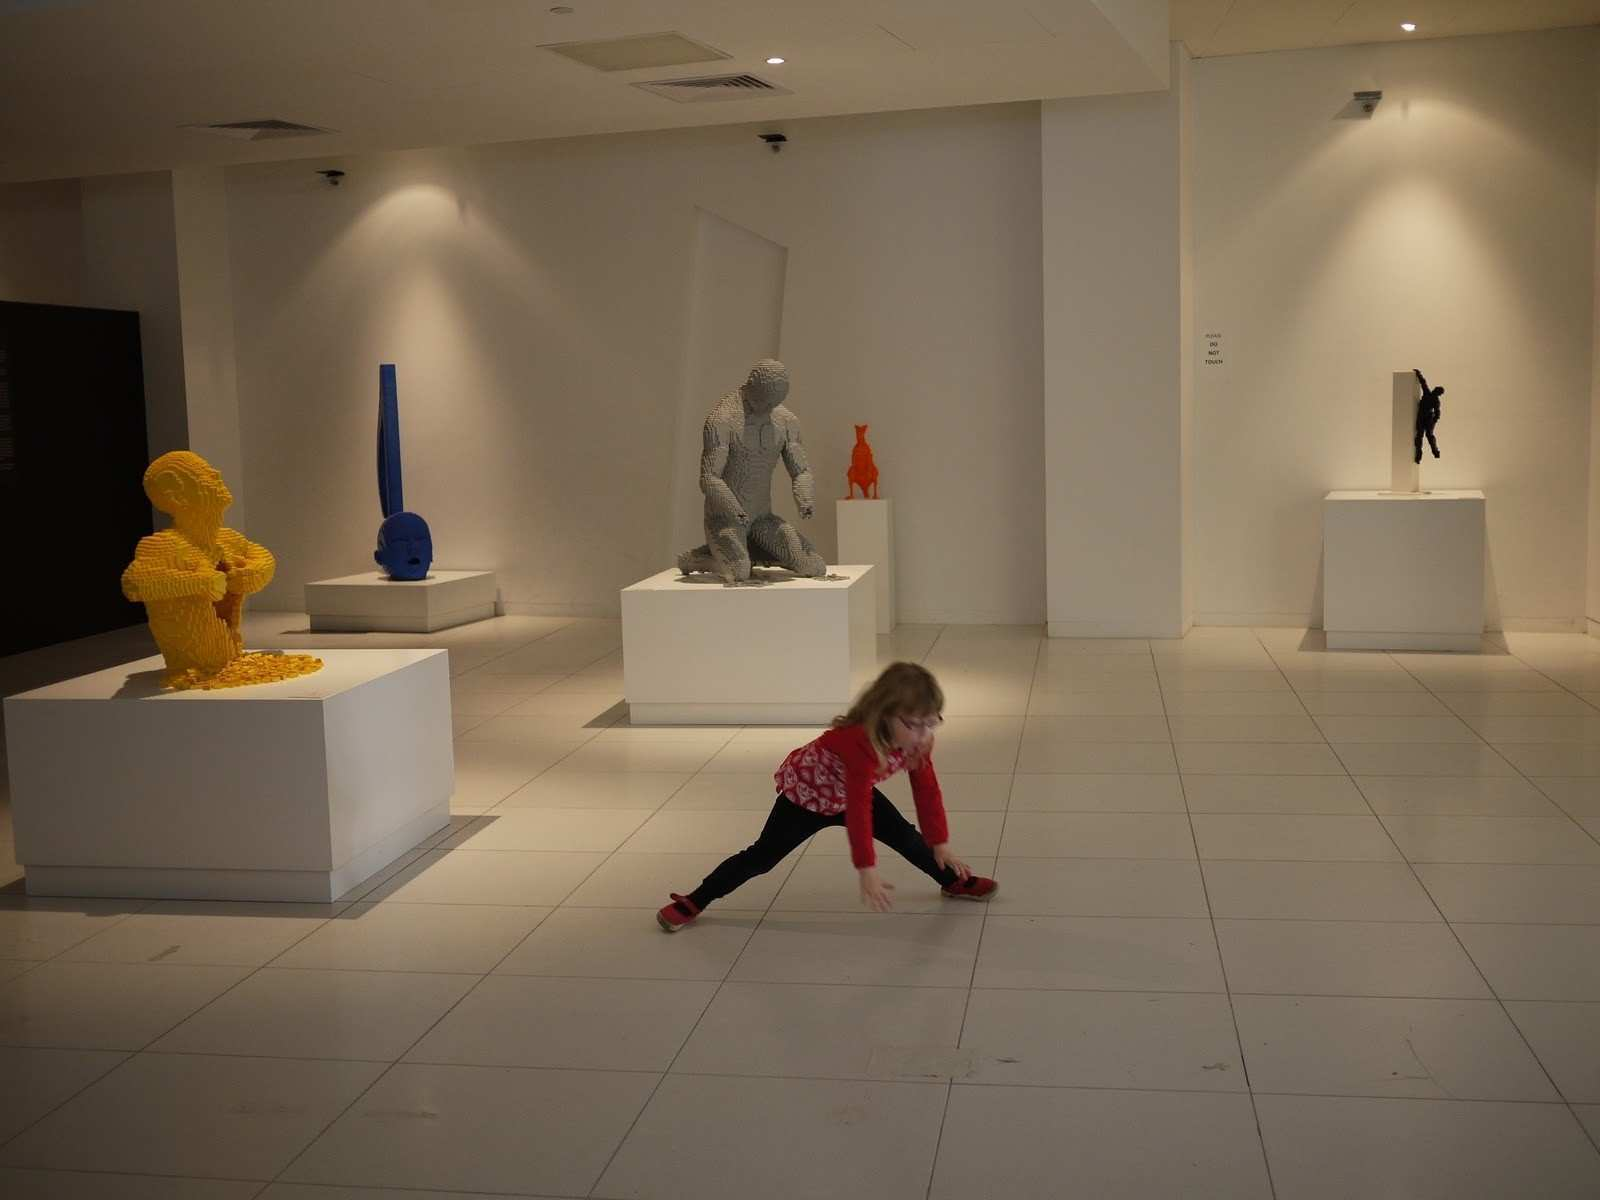 Little Hiccups The Art of the Brick